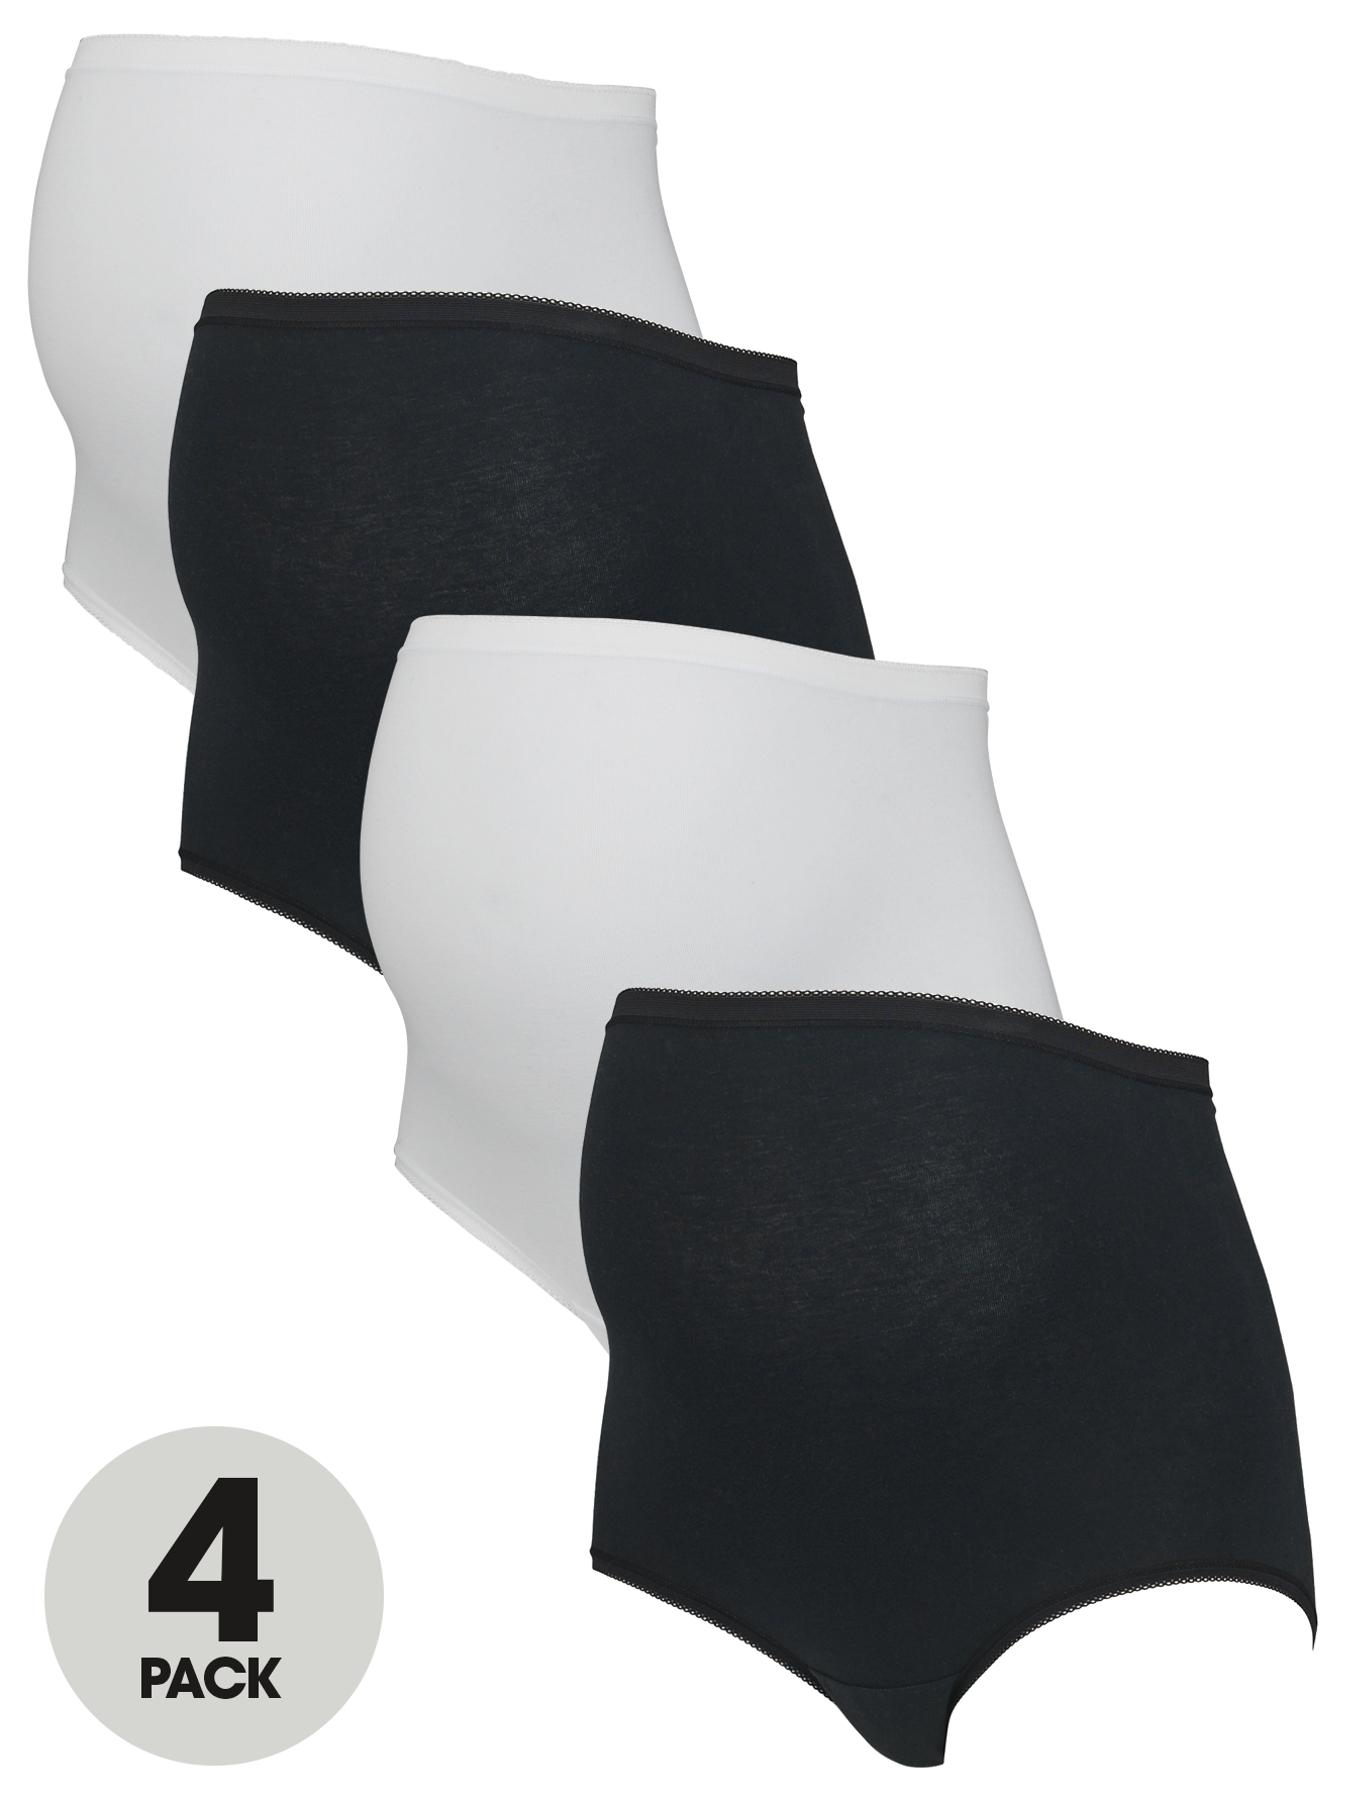 Maternity Briefs (4 Pack) 'Over The Bump', Black at Littlewoods